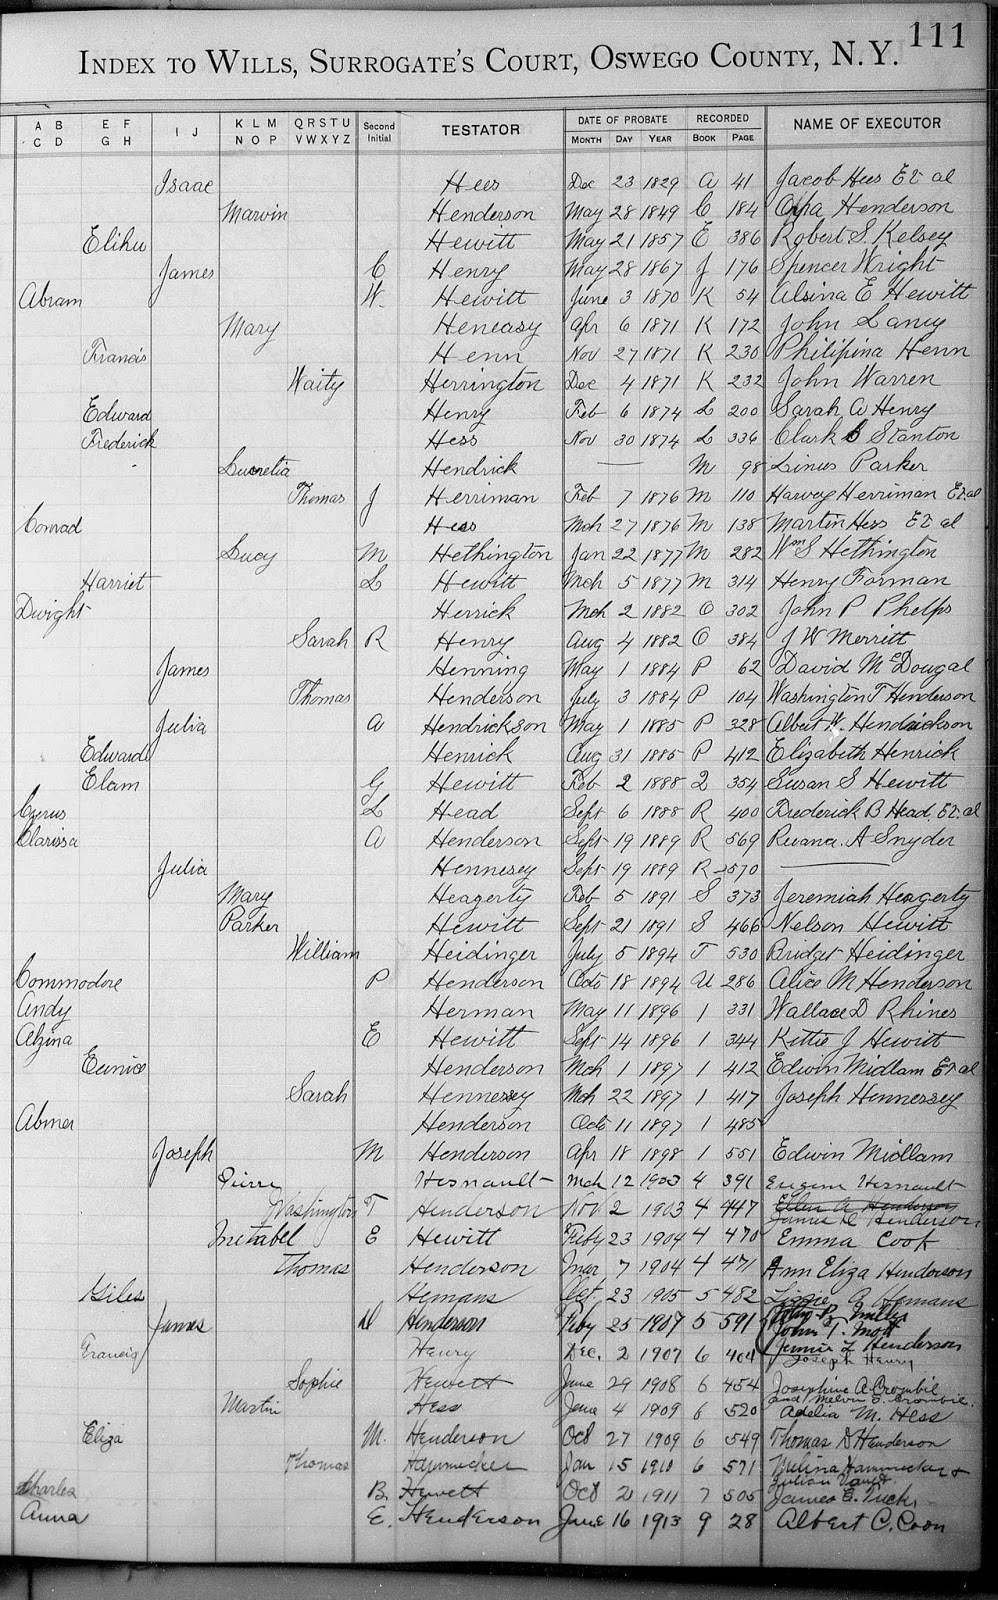 Climbing My Family Tree: Index to Wills, Surrogates Court, Oswego County